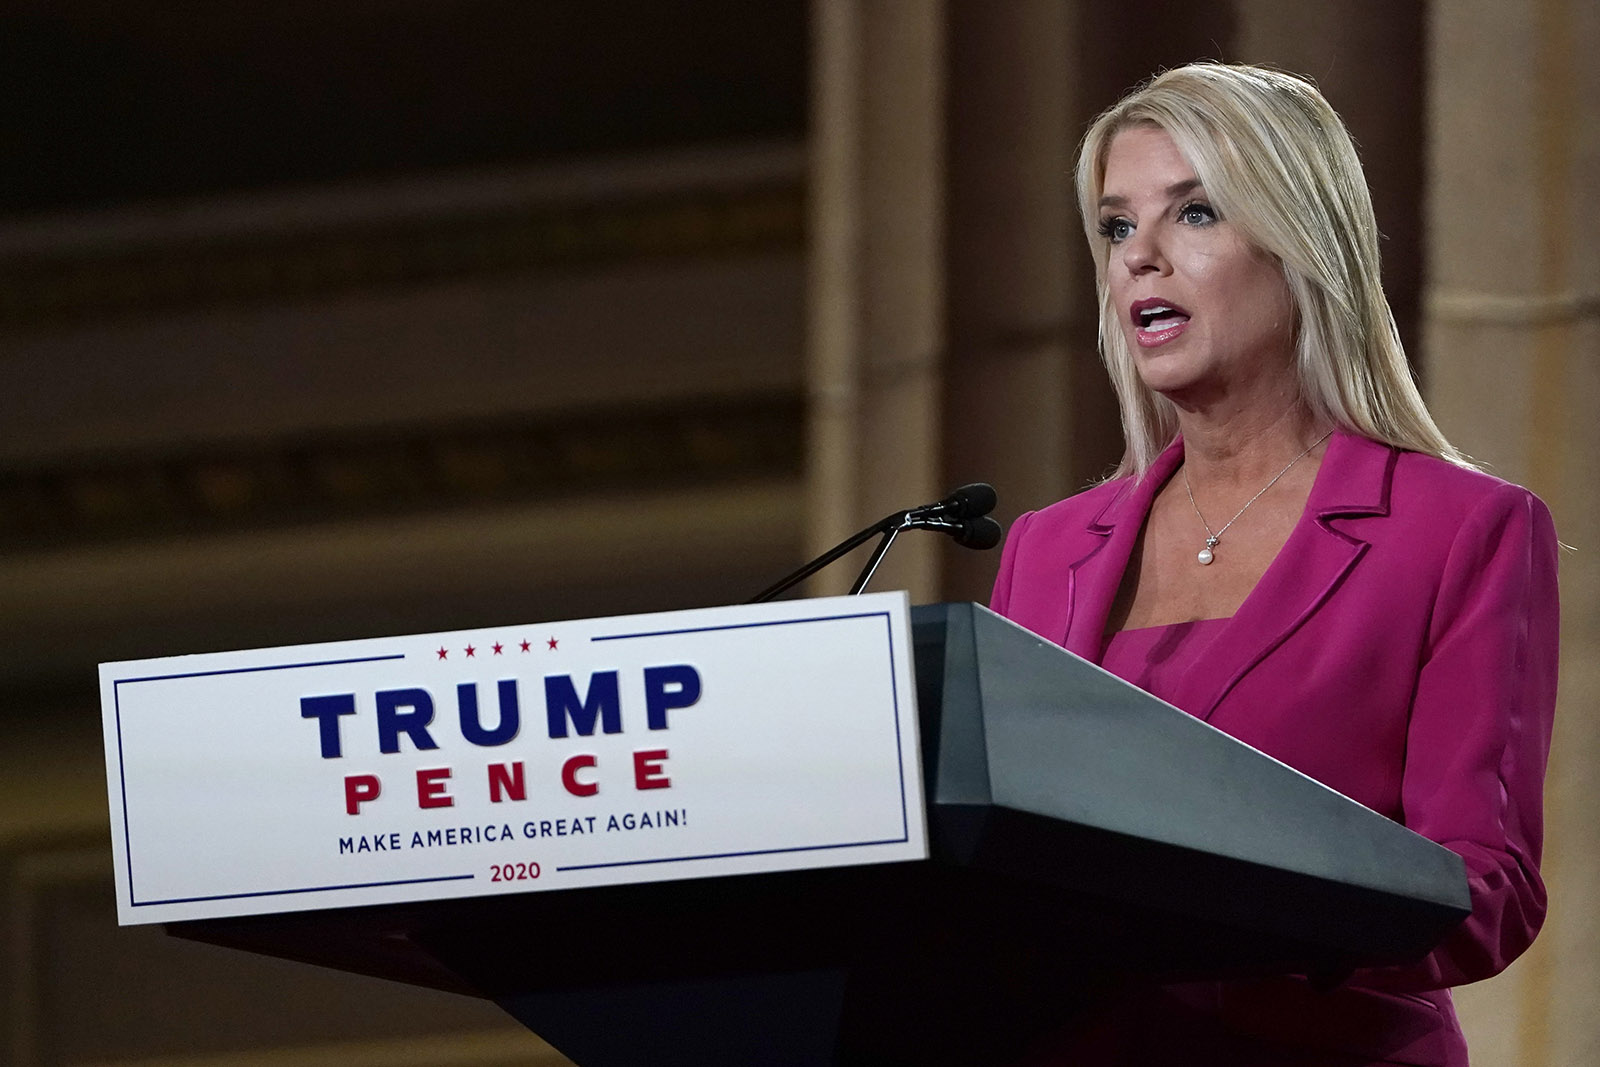 Former Florida Attorney General Pam Bondi speaks during the second day of the Republican National Convention from the Andrew W. Mellon Auditorium in Washington, Tuesday, August 25.